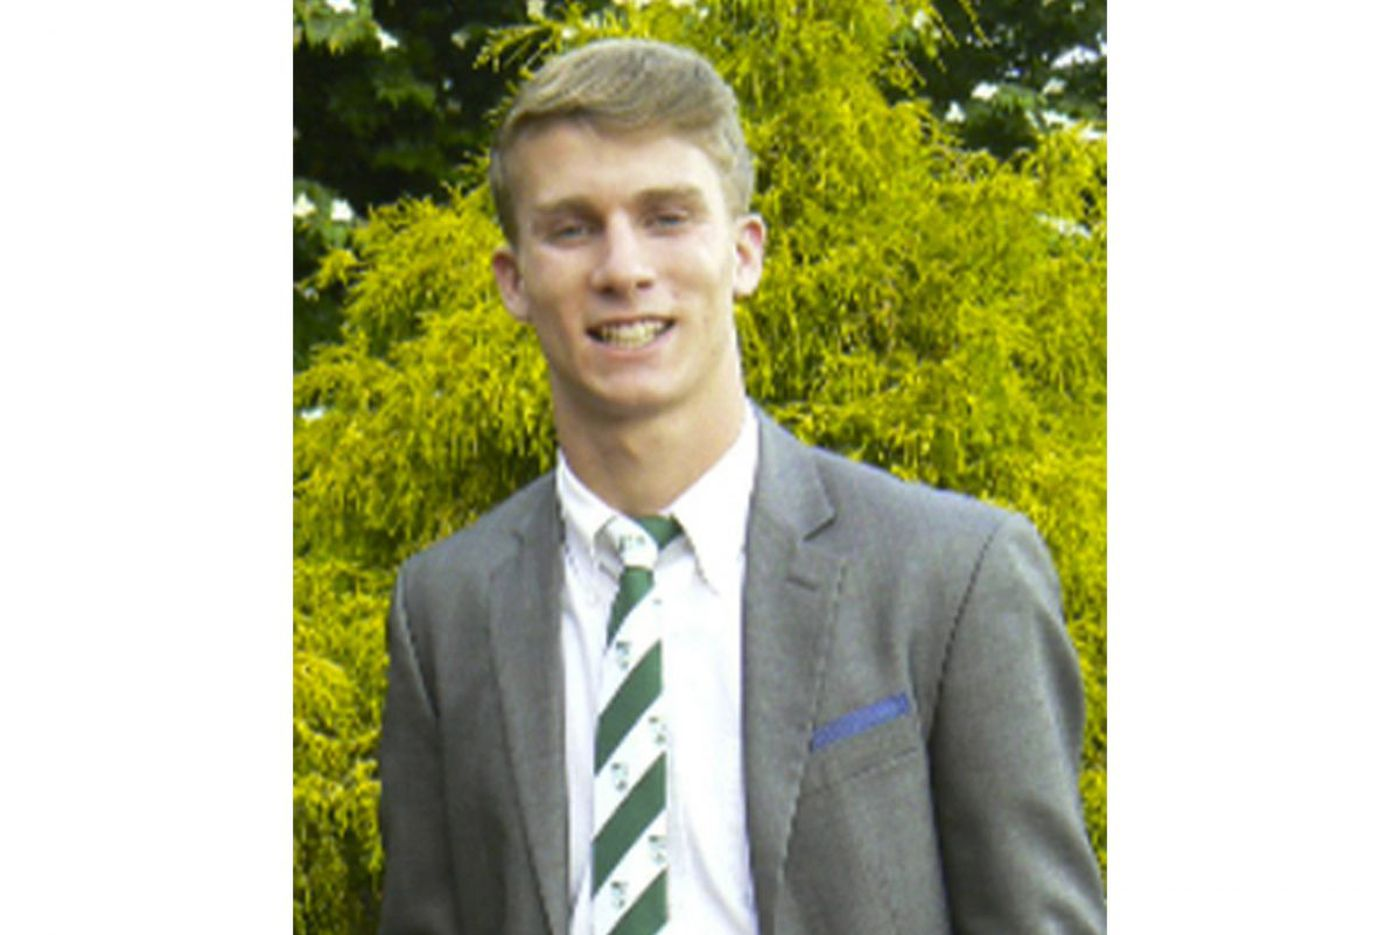 Missing St. Joe's student Mark Dombroski had wallet and phone when found, Bermuda police say